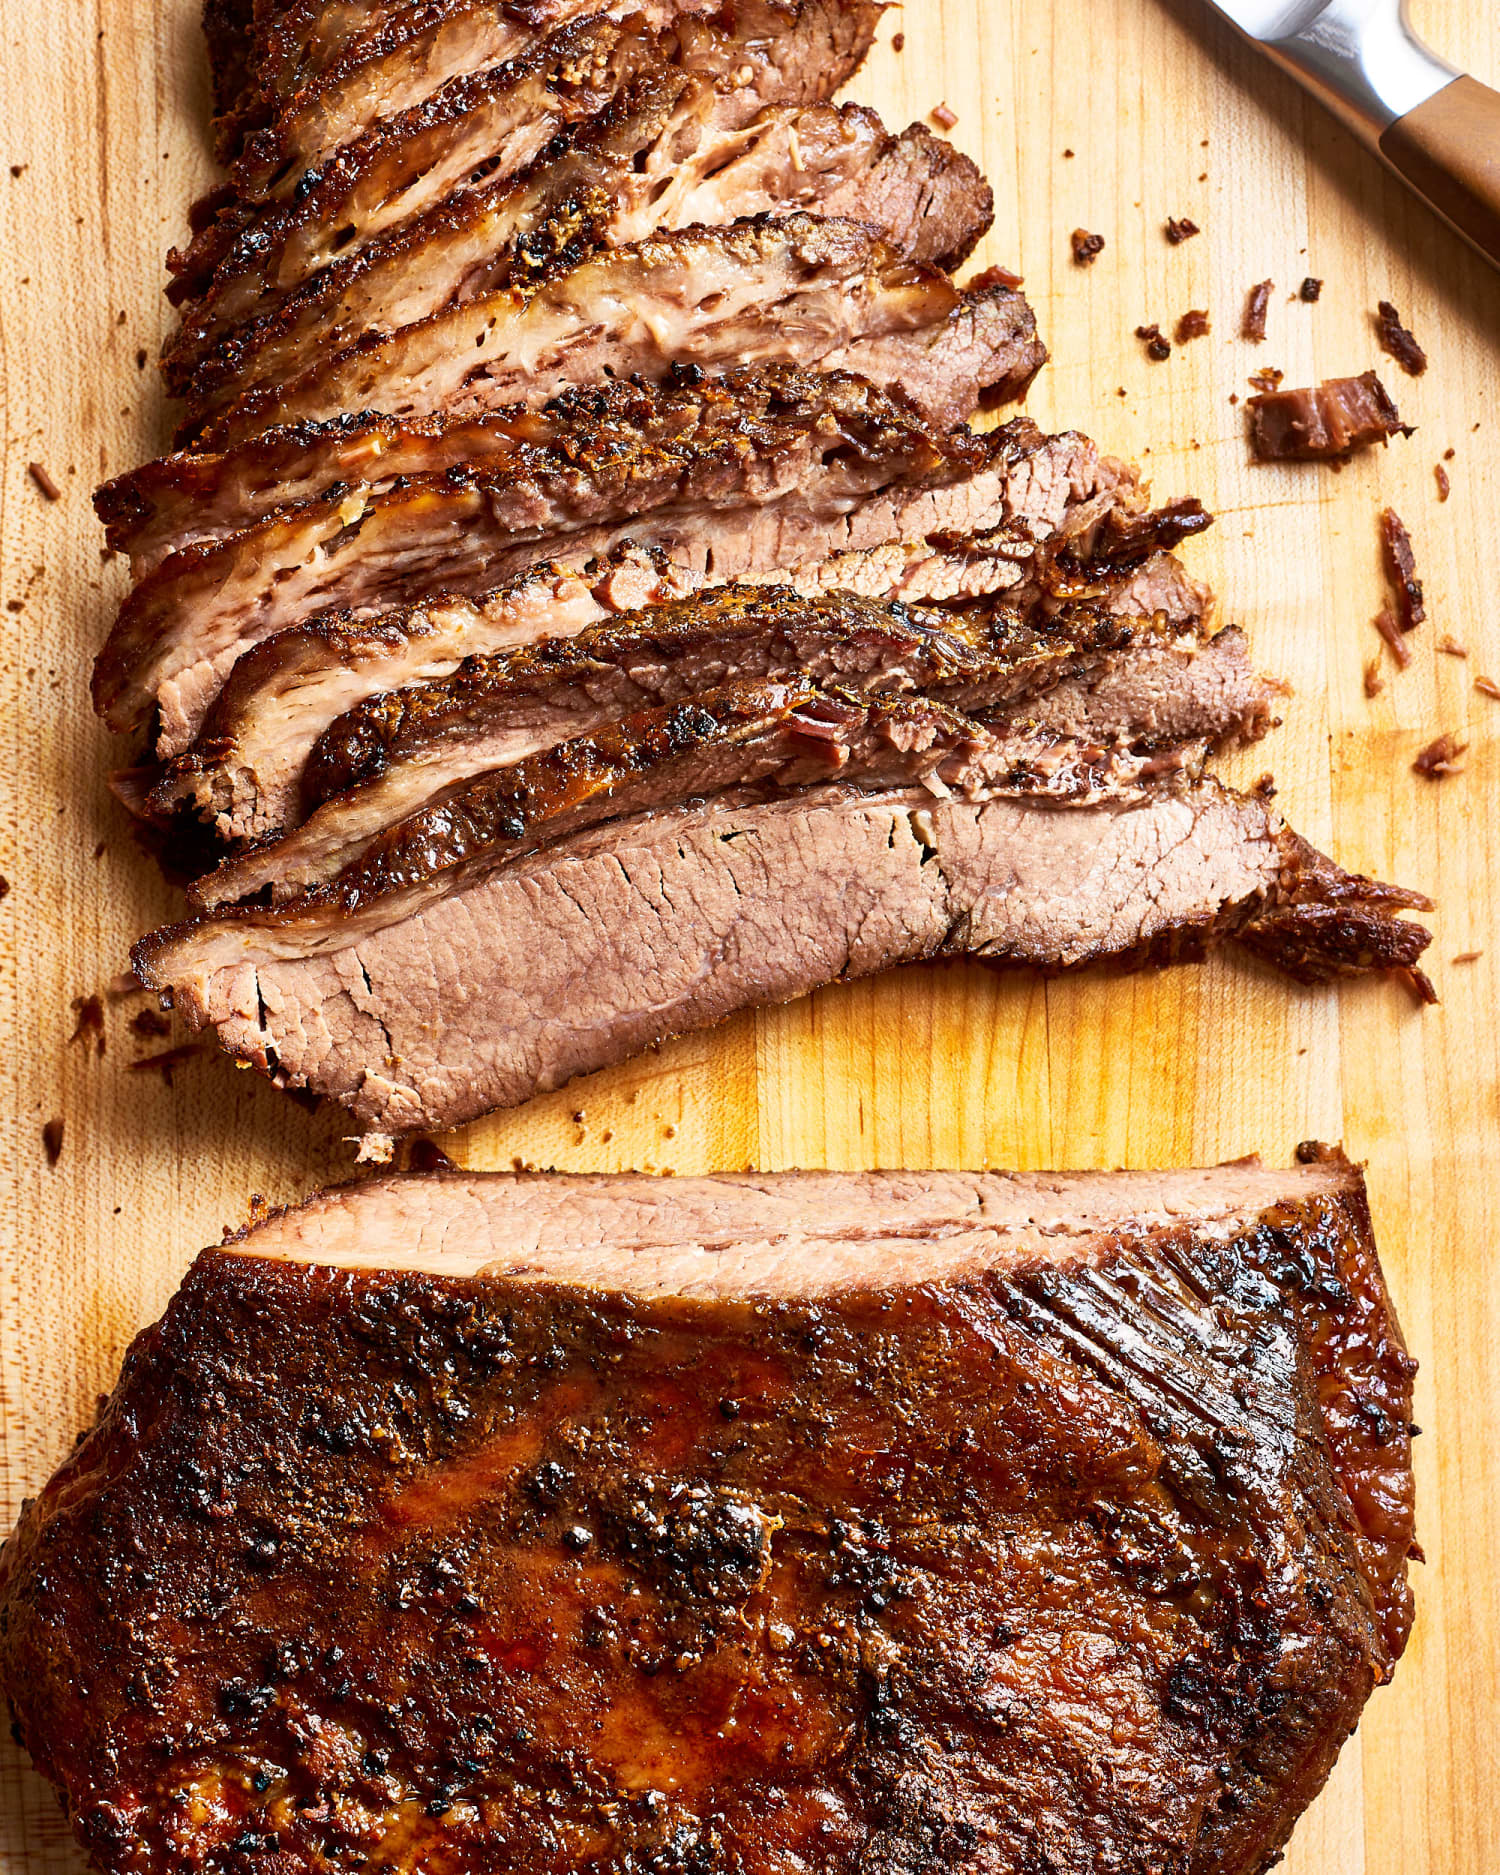 How To Make Texas-Style Brisket in the Oven